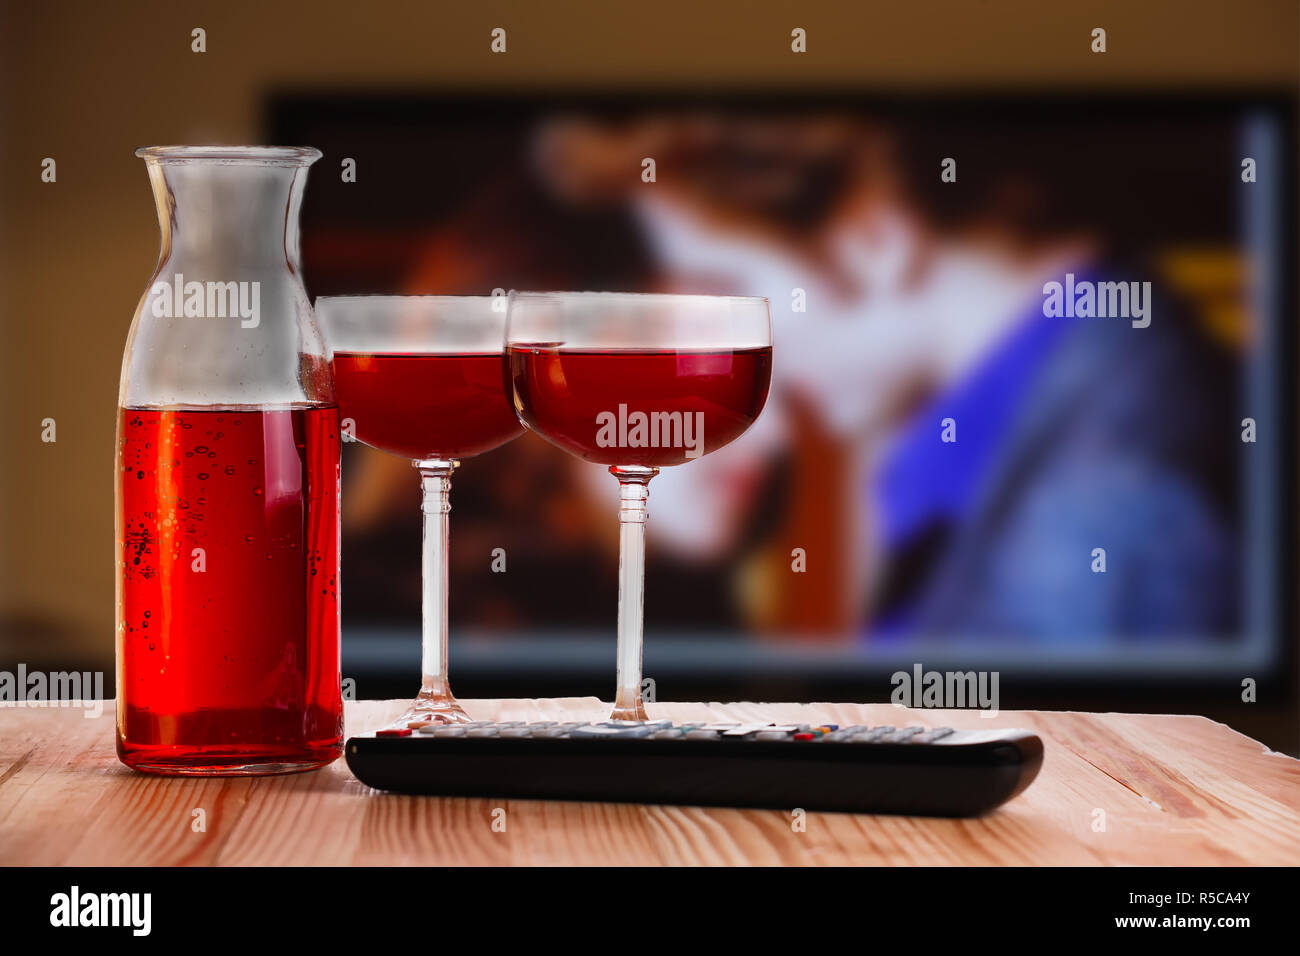 Two glass and carafe of wine with TV remote on light natural wooden table. Concept of romantic movie watching. - Stock Image